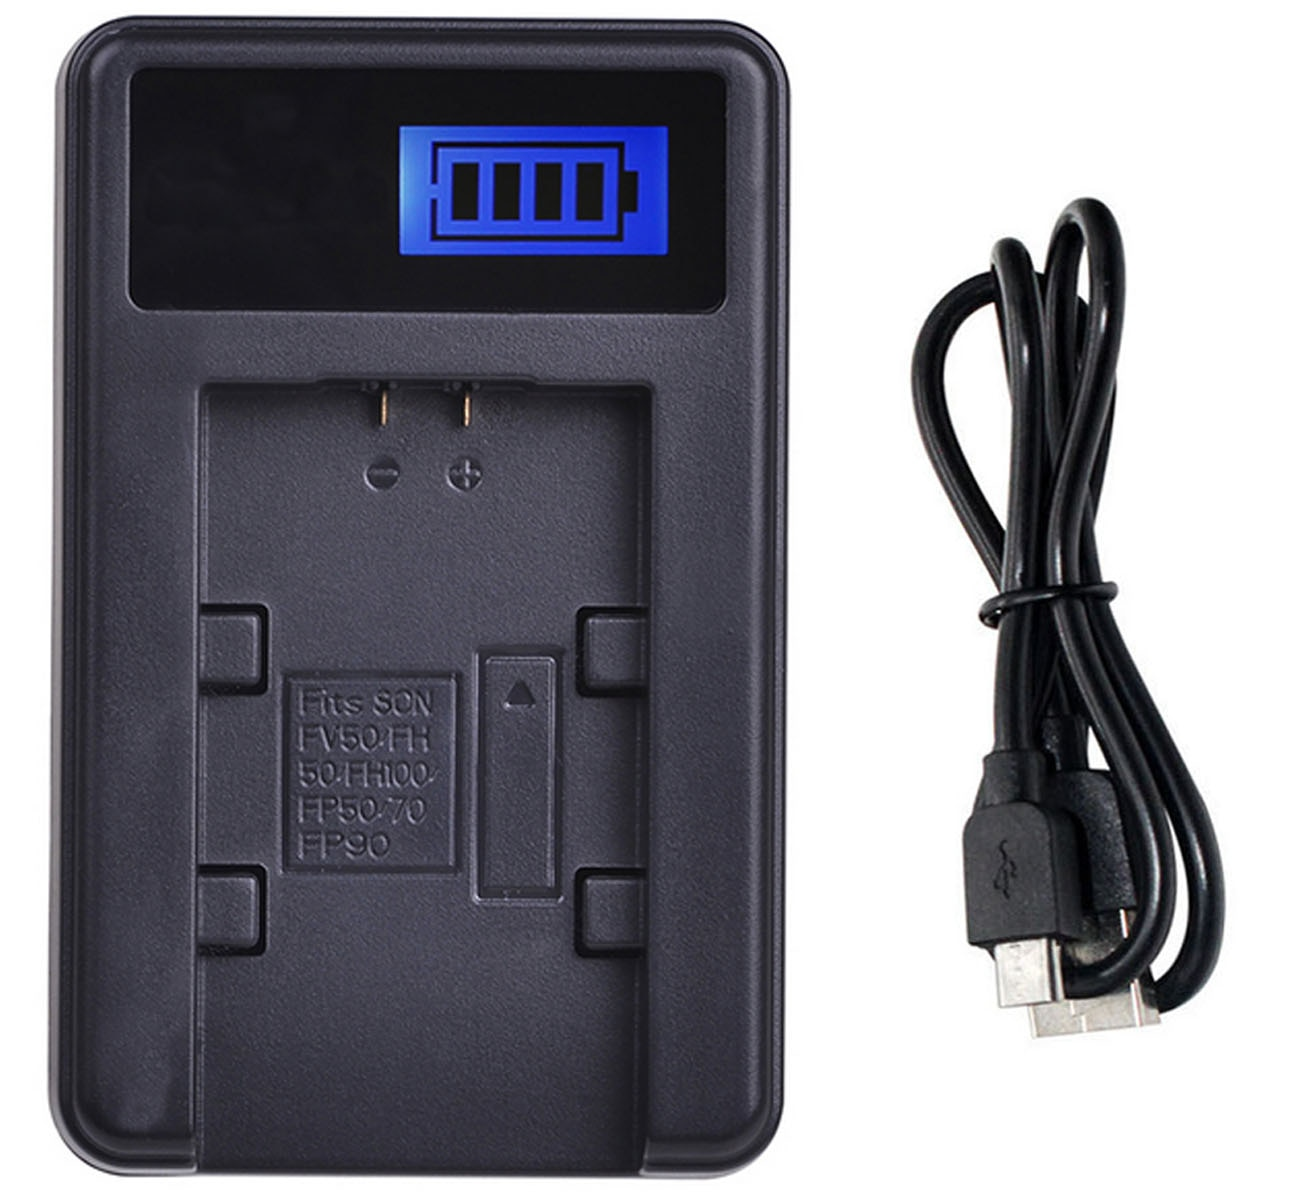 Battery Charger for Sony HDR-CX400E, HDR-CX410VE, HDR-CX420E, HDR-CX430VE, HDR-CX450E, HDR-CX455E, H